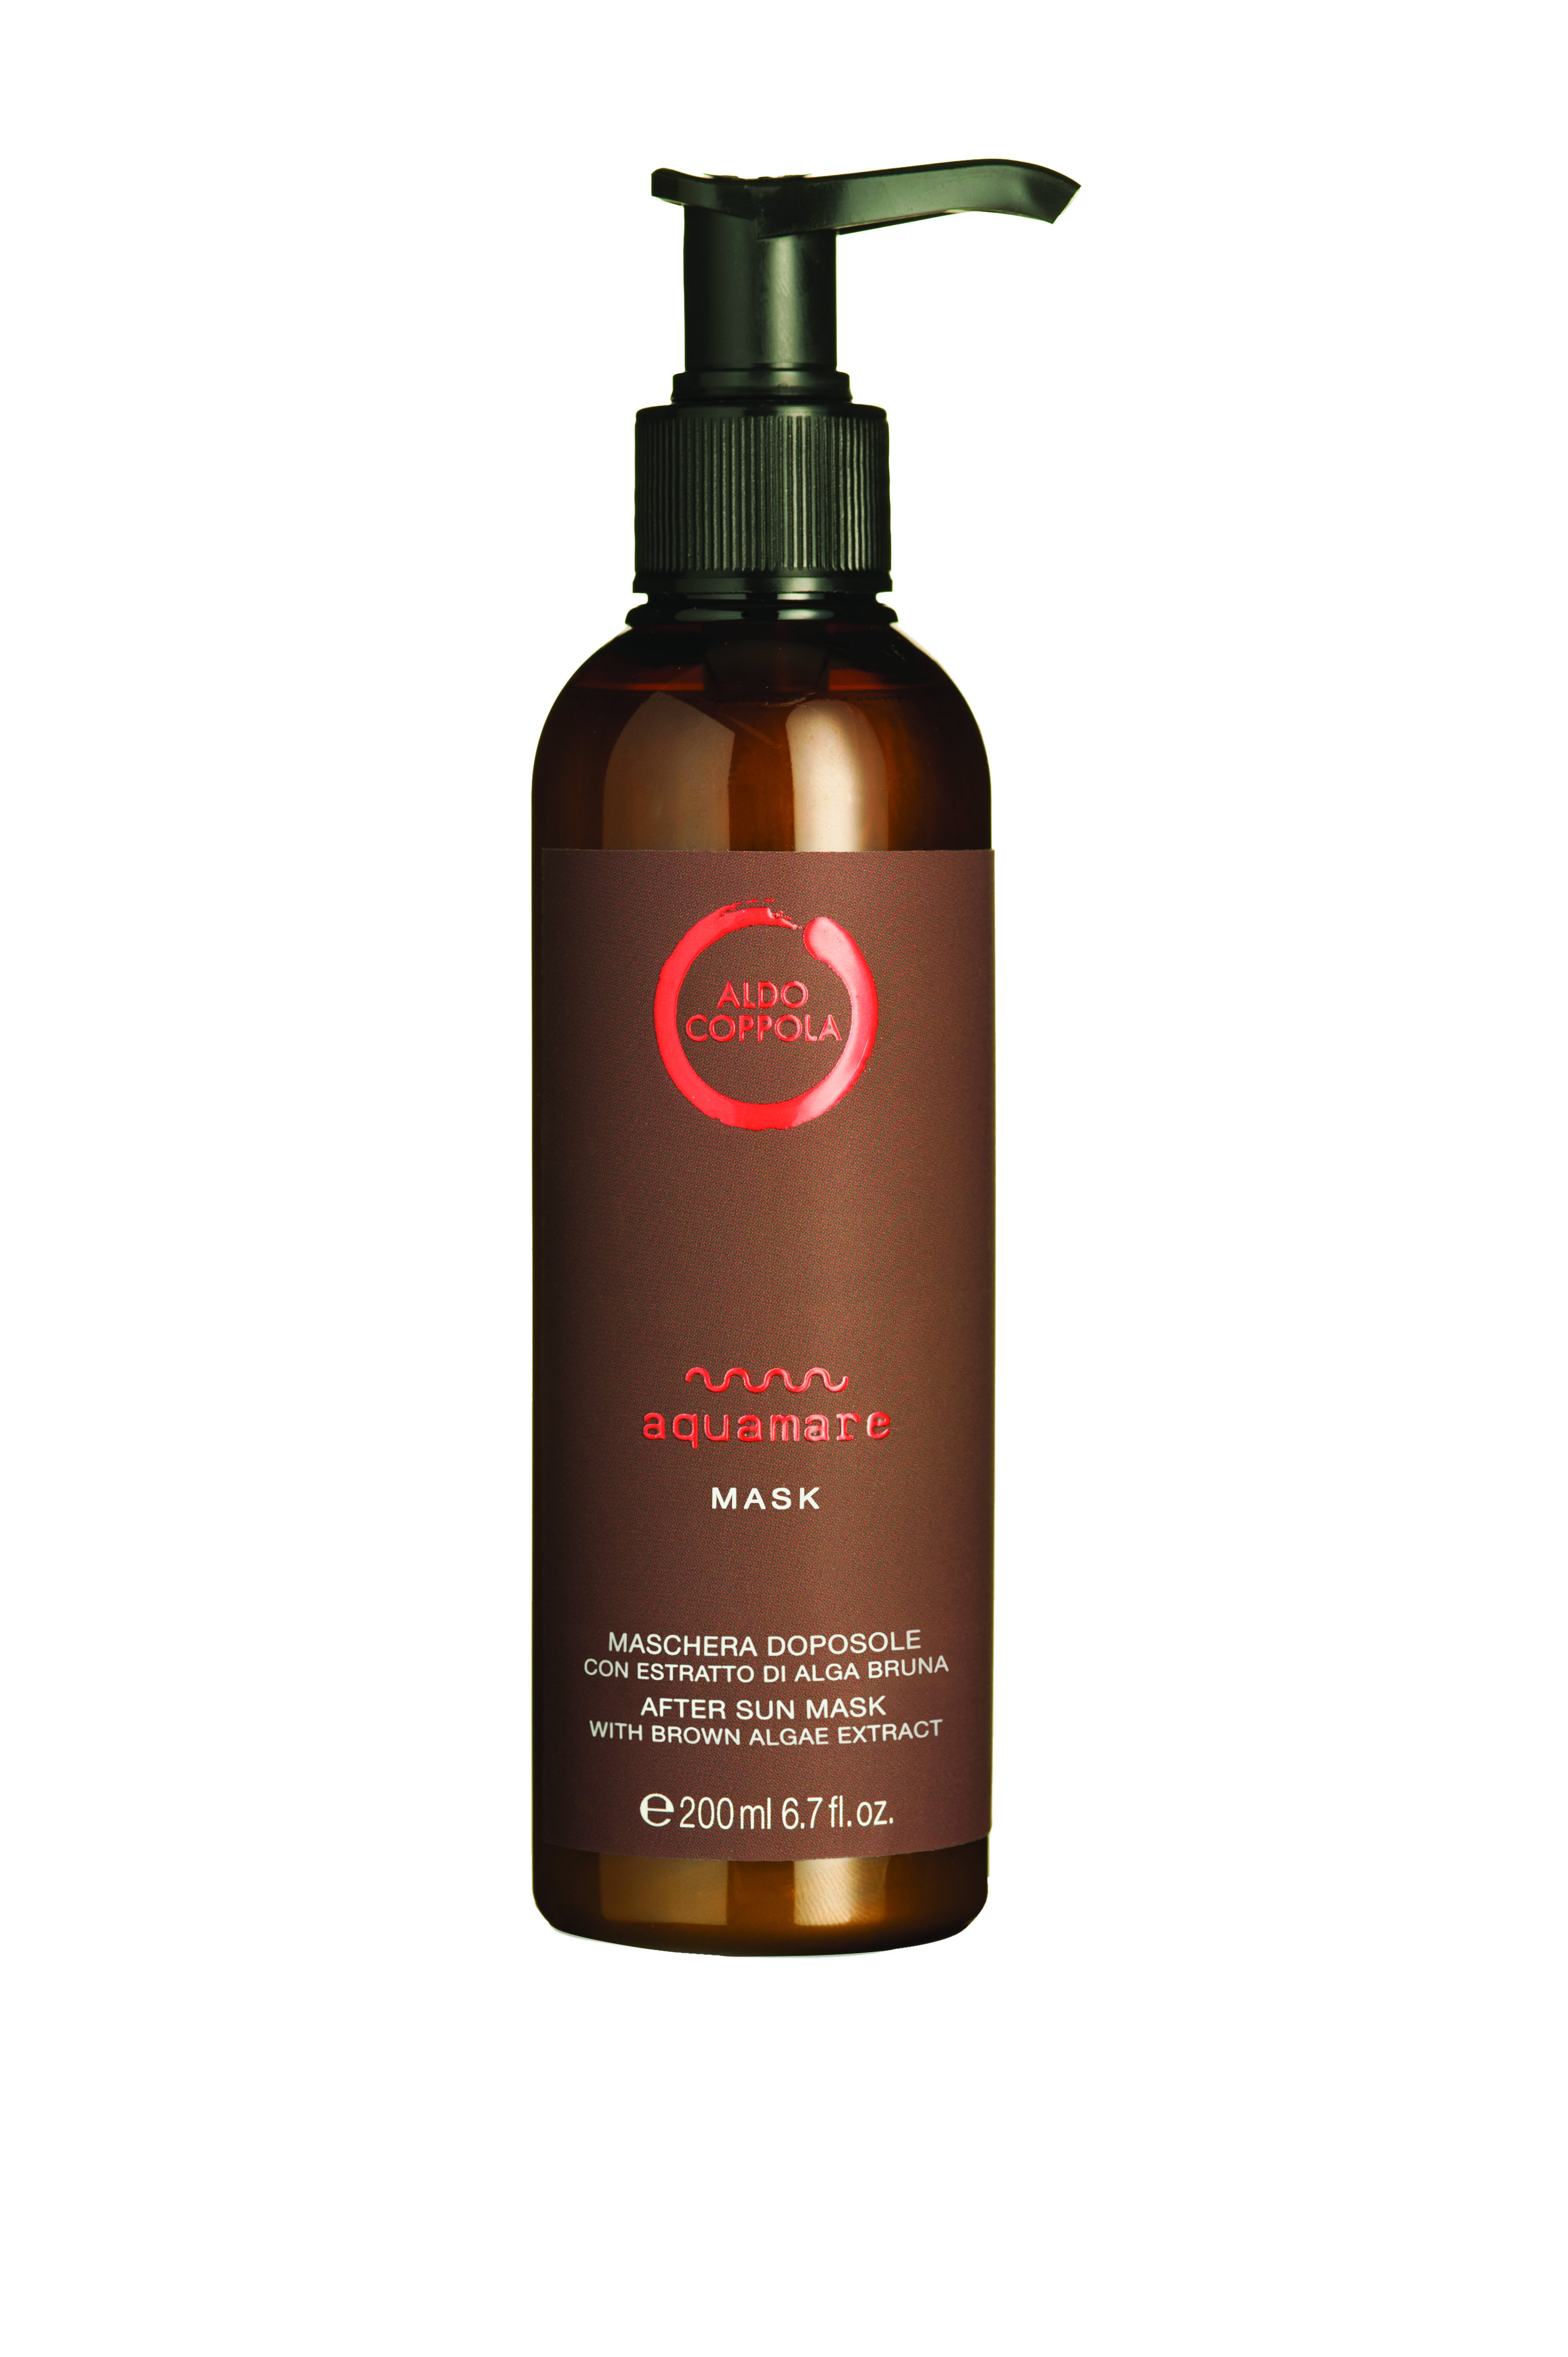 Top 5 Aldo Coppola House Of Coco Gieve Eucalyptus Hair Conditioner Oli Essenziali Soothing Mask Is Infused With And Sylvestris Pine This Helps Nourish The Scalp Add Moisture To Dried Out